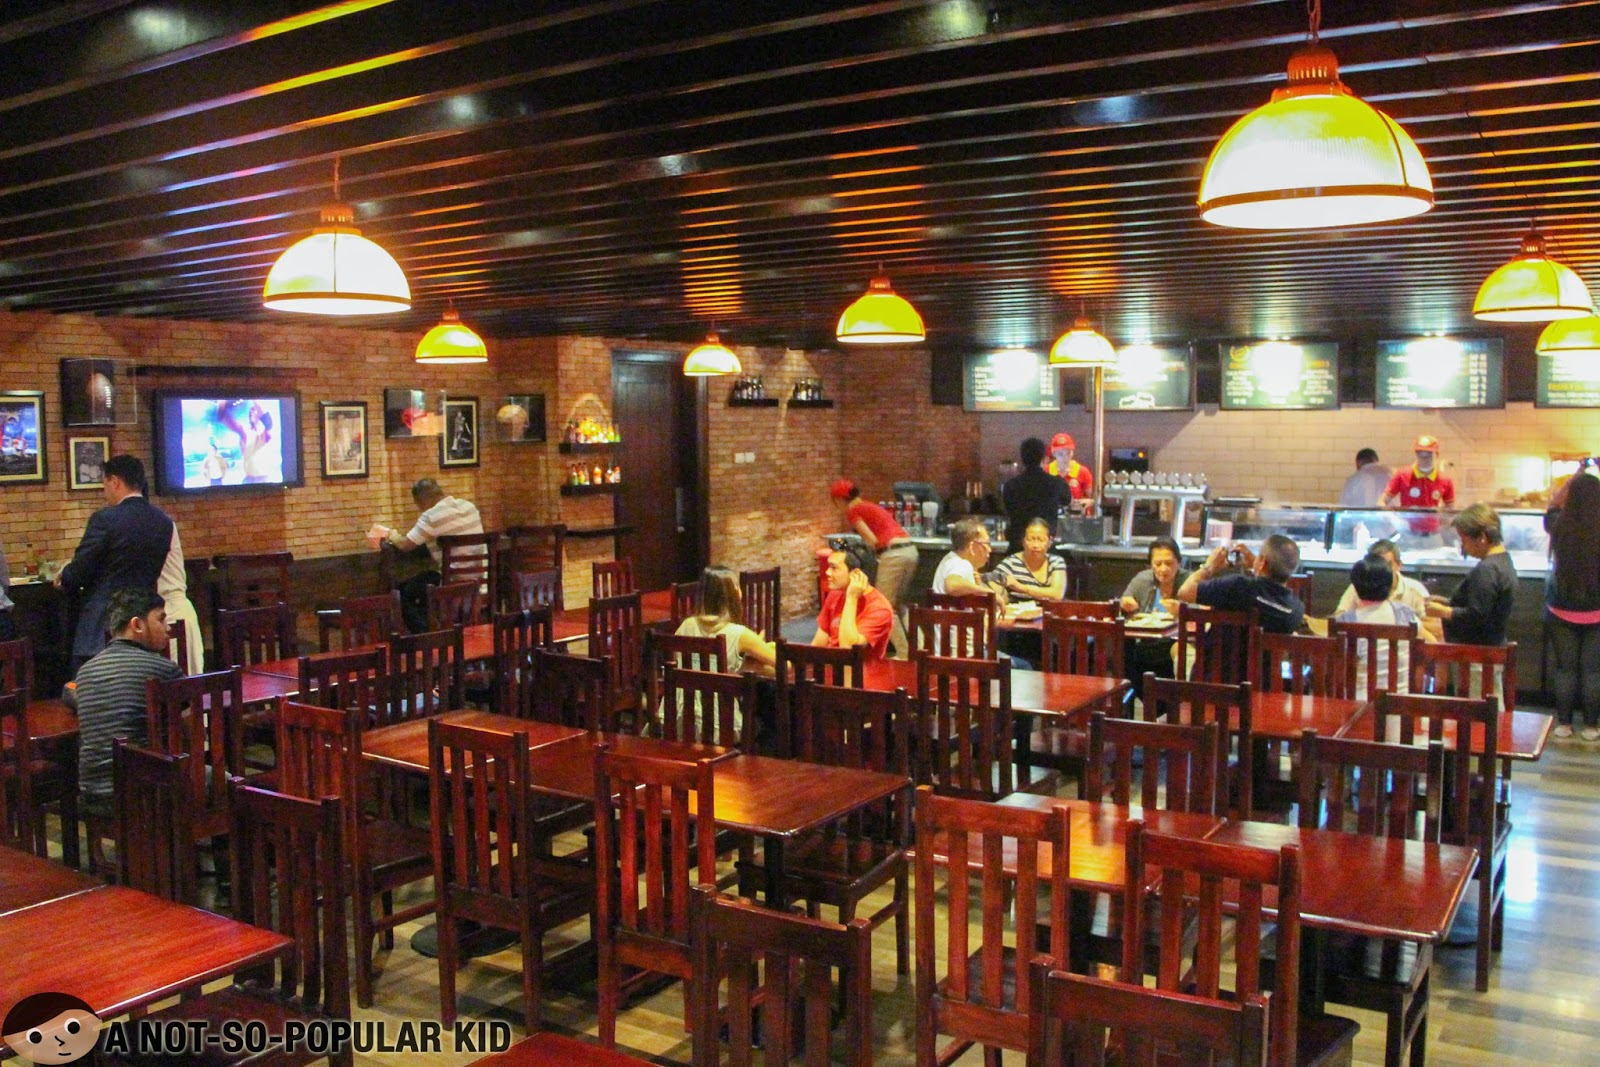 Interior of Franks Craft Beers with sufficient seating capacity